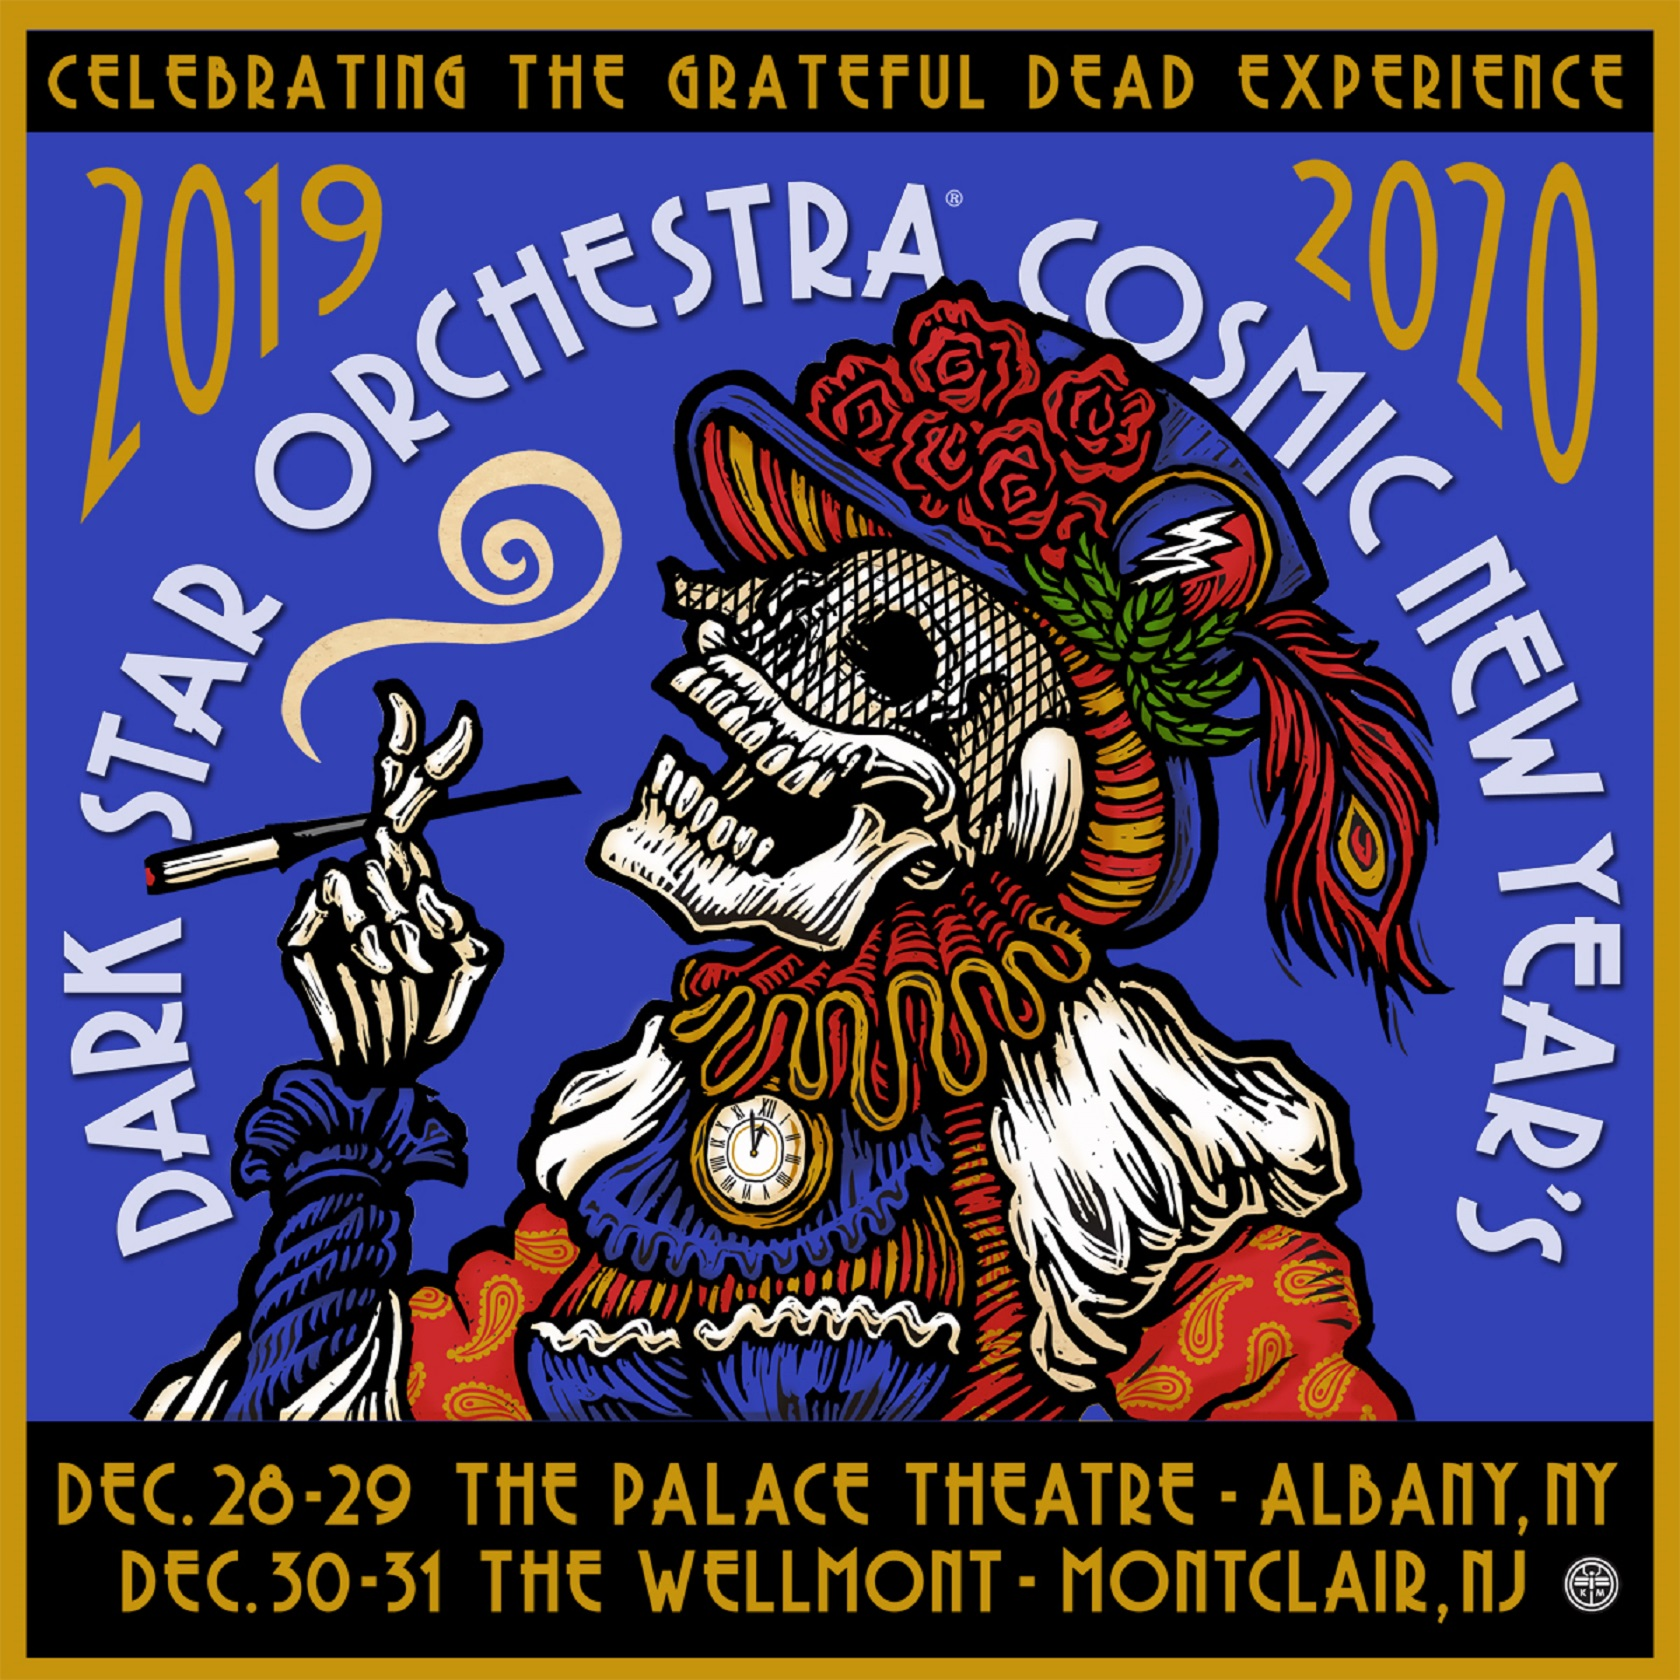 Dark Star Orchestra Announces New Year's Eve Run & Fall Tour Leg Two